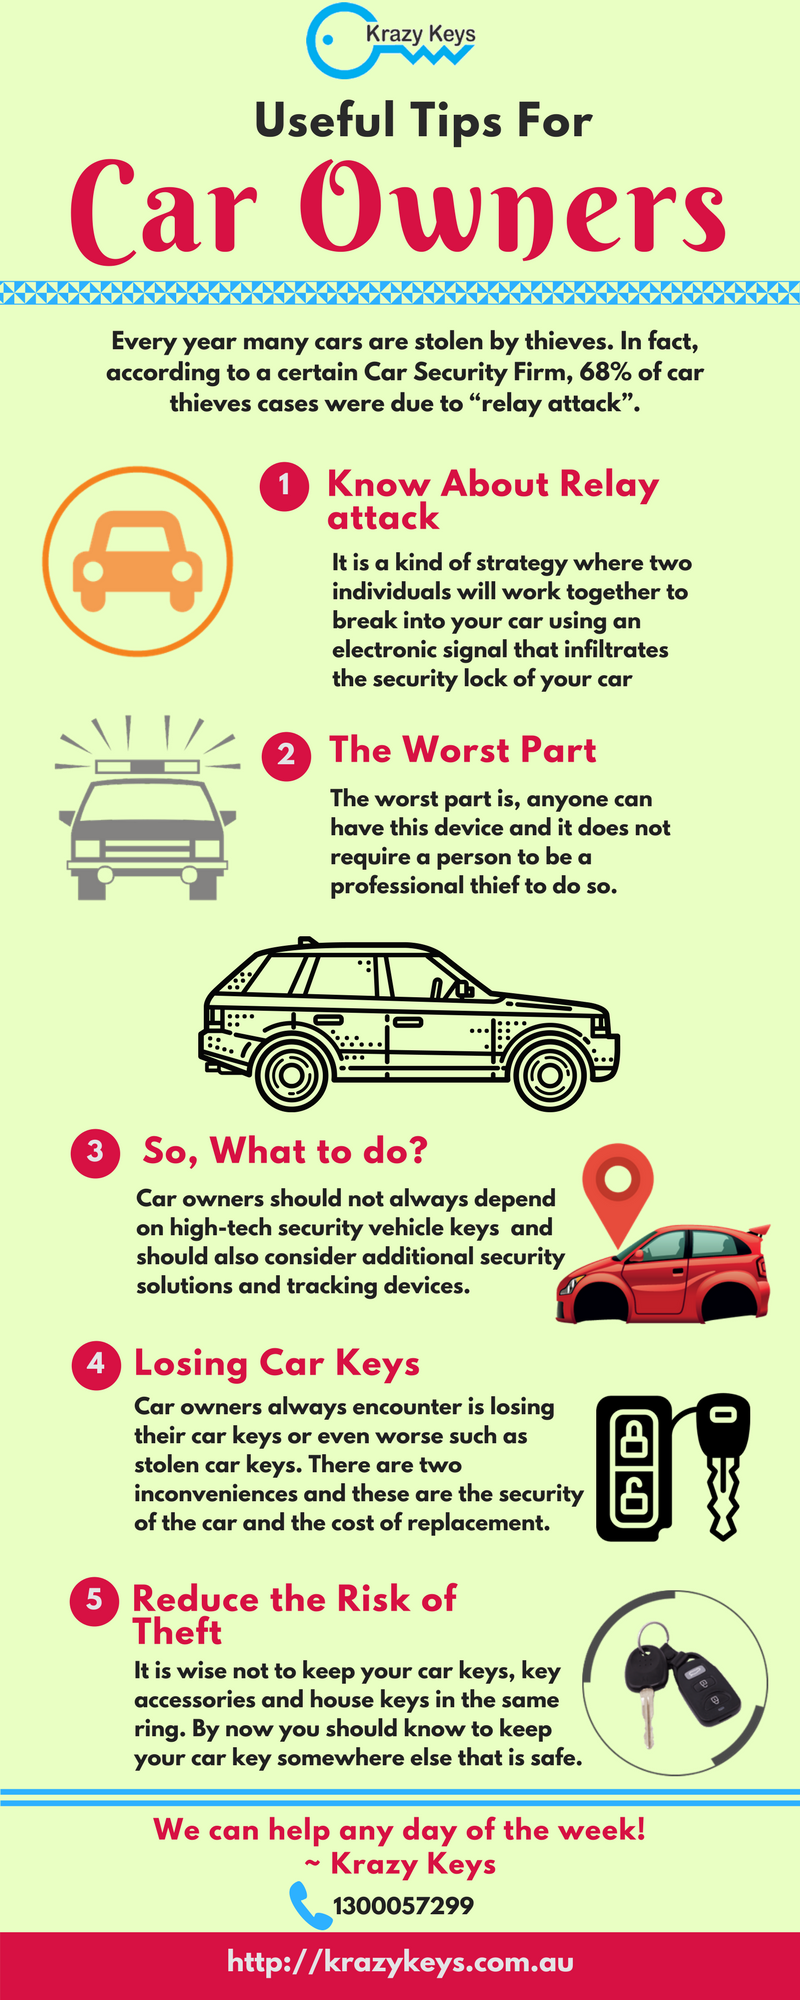 Key Points Every Car Owner Should Know Krazy Keys Infographics